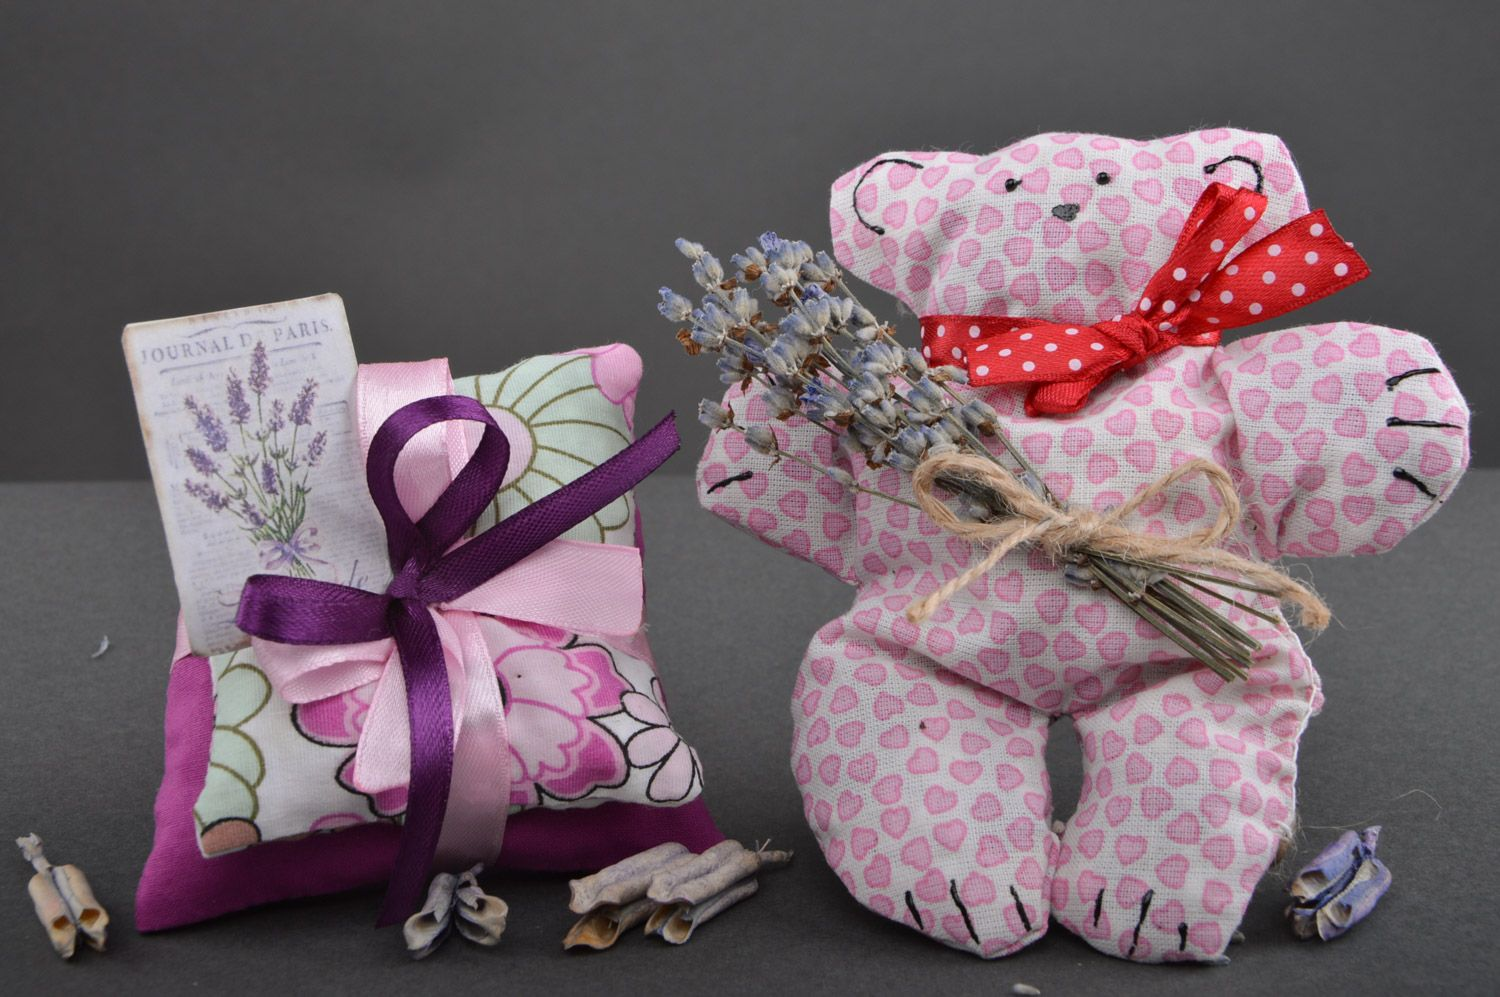 Set of handmade sachet pillows with herbs and soft fabric toy bear 3 items photo 2